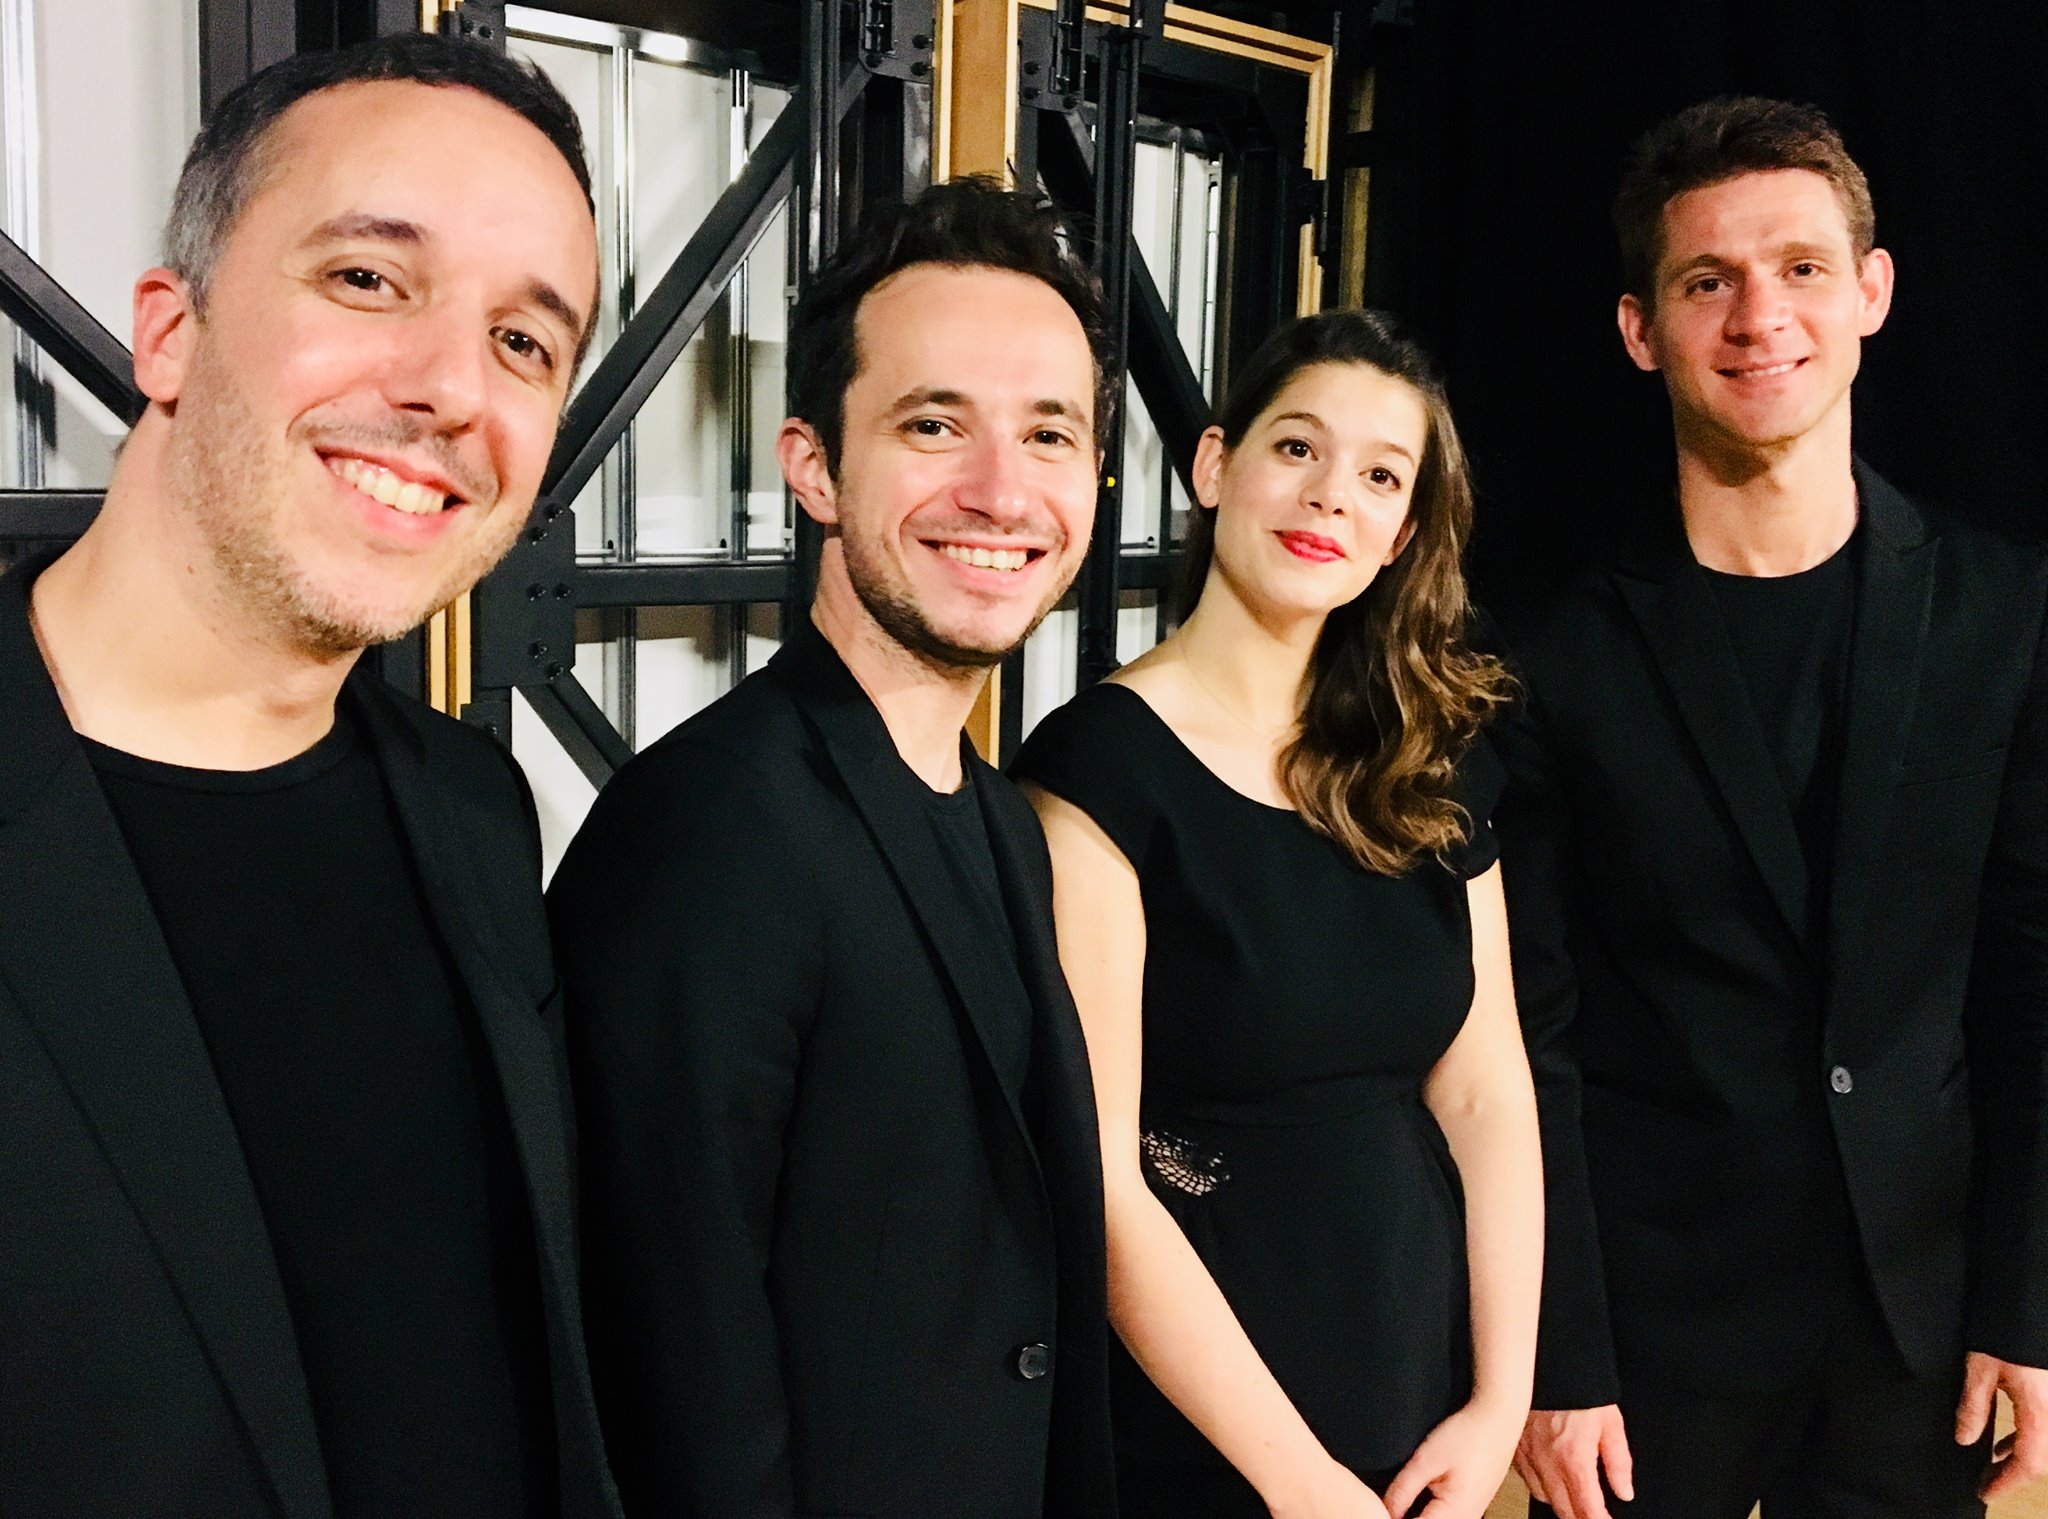 Top French quartet replaces its violist